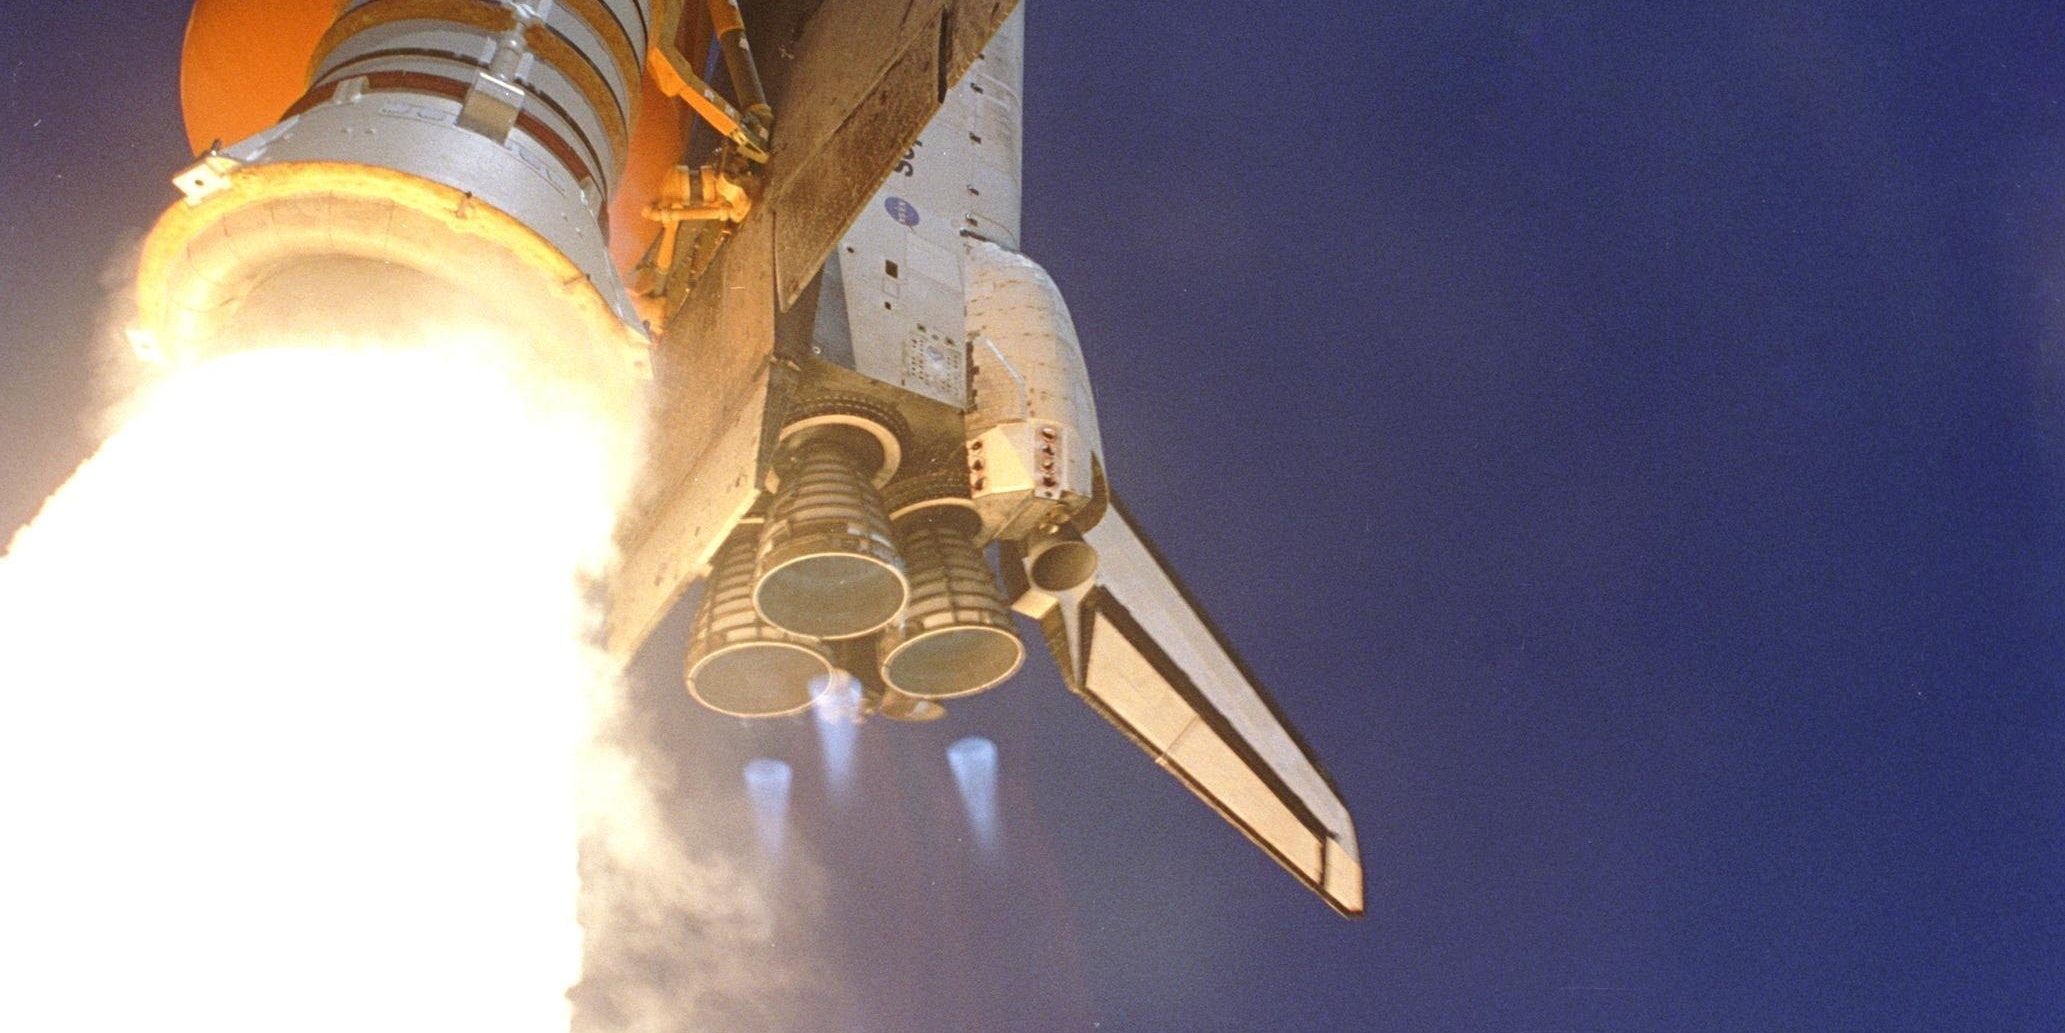 In this handout photo provided by NASA, Space Shuttle Discovery kicks off the Fourth of July fireworks with its own fiery display as it rockets into the blue sky, spewing foam and smoke over the ground, on mission STS-121 July 4, 2006 at the Kennedy Space Center in Cape Canaveral, Florida. It was the third launch attempt in four days; the others were scrubbed due to weather concerns. Liftoff was on-time at 2:38 p.m. EDT. During the 12-day mission, the STS-121 crew of seven will test new equipment and procedures to improve shuttle safety, as well as deliver supplies and make repairs to the International Space Station. Landing is scheduled for July 17 at Kennedy's Shuttle Landing Facility.